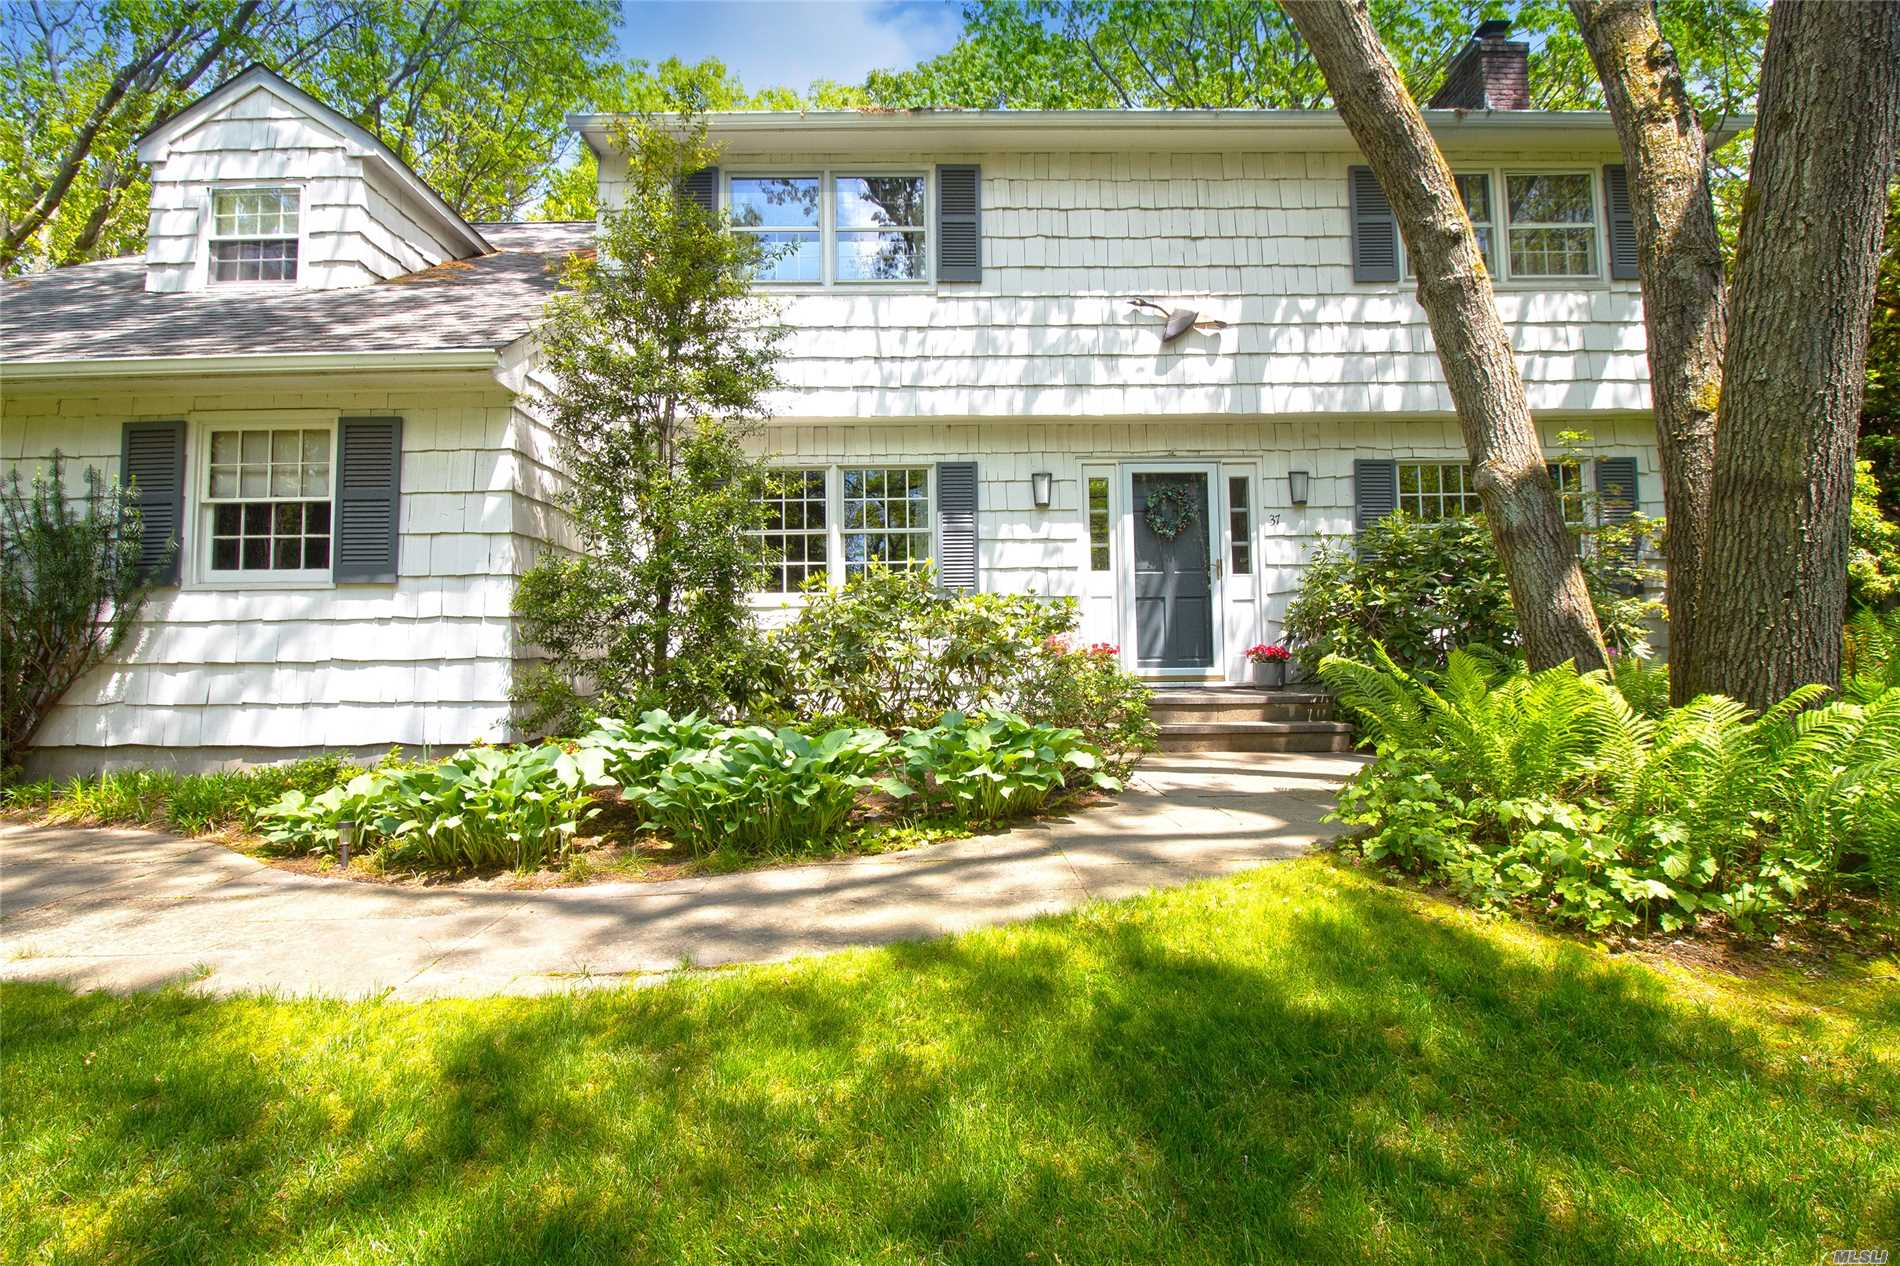 Classic four Bedroom Colonial just a stone's throw to West Meadow Beach. Gracious Living Room with fireplace, formal Dining Room, Den, Eat in Kitchen and Sunroom. Tucked away off the road on 1.36 private acres with mature Rhododendrons and Azaleas. Three Village Schools, Excellent value!